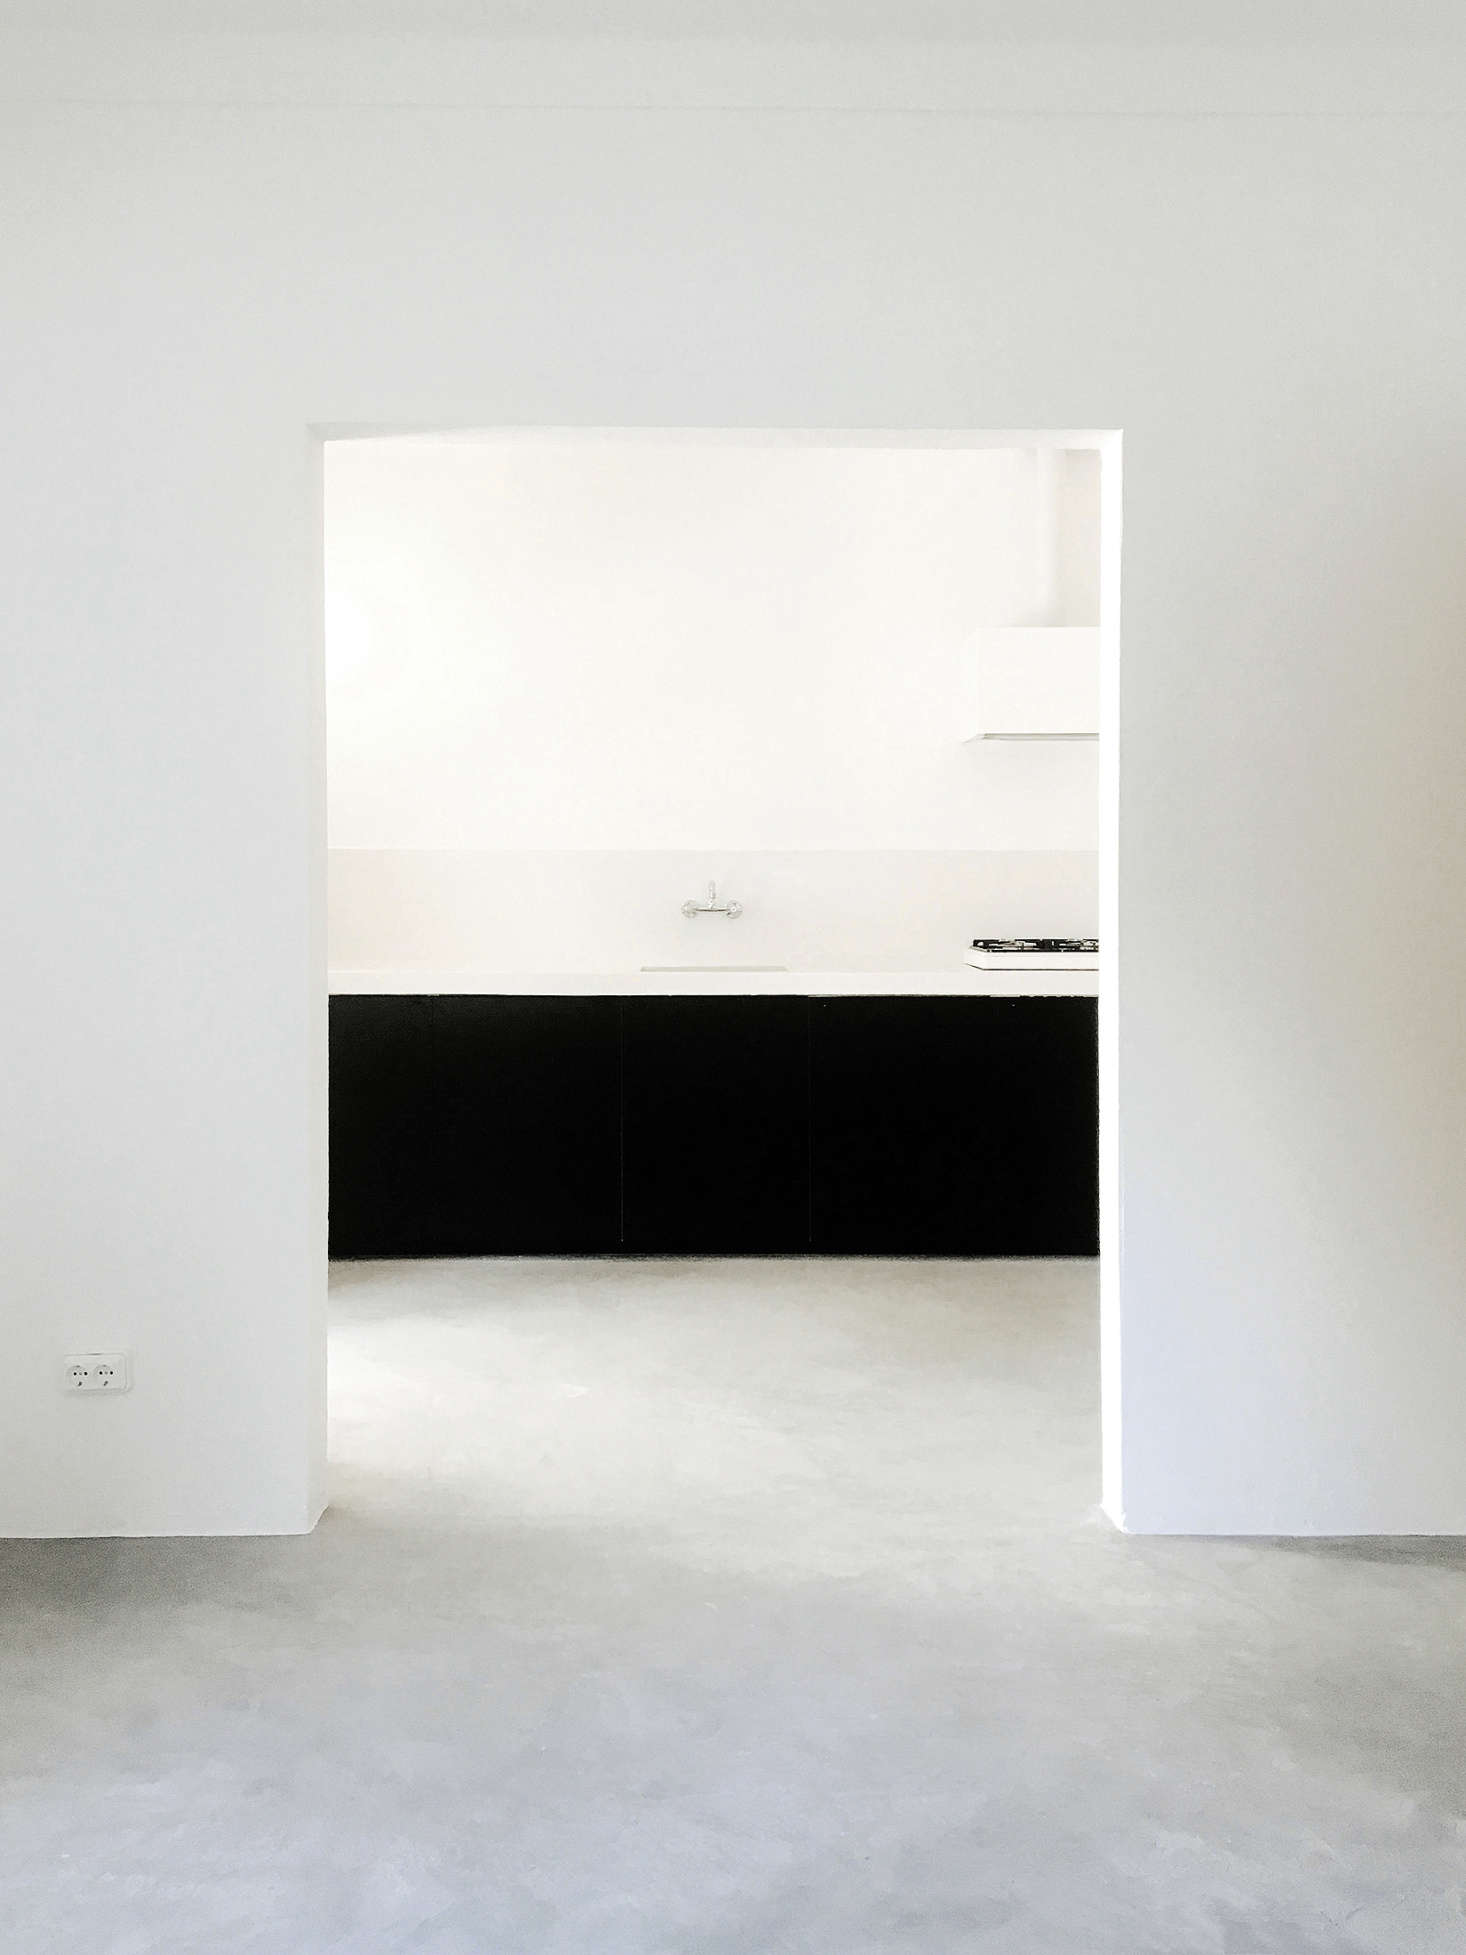 A lesson in sparseness: A wide, sculptural doorway leads into the kitchen. Because the interiors are so spartan, Bento chose the limited materials with care: white-washed plaster walls and matte concrete floors that have a subtle visual texture.